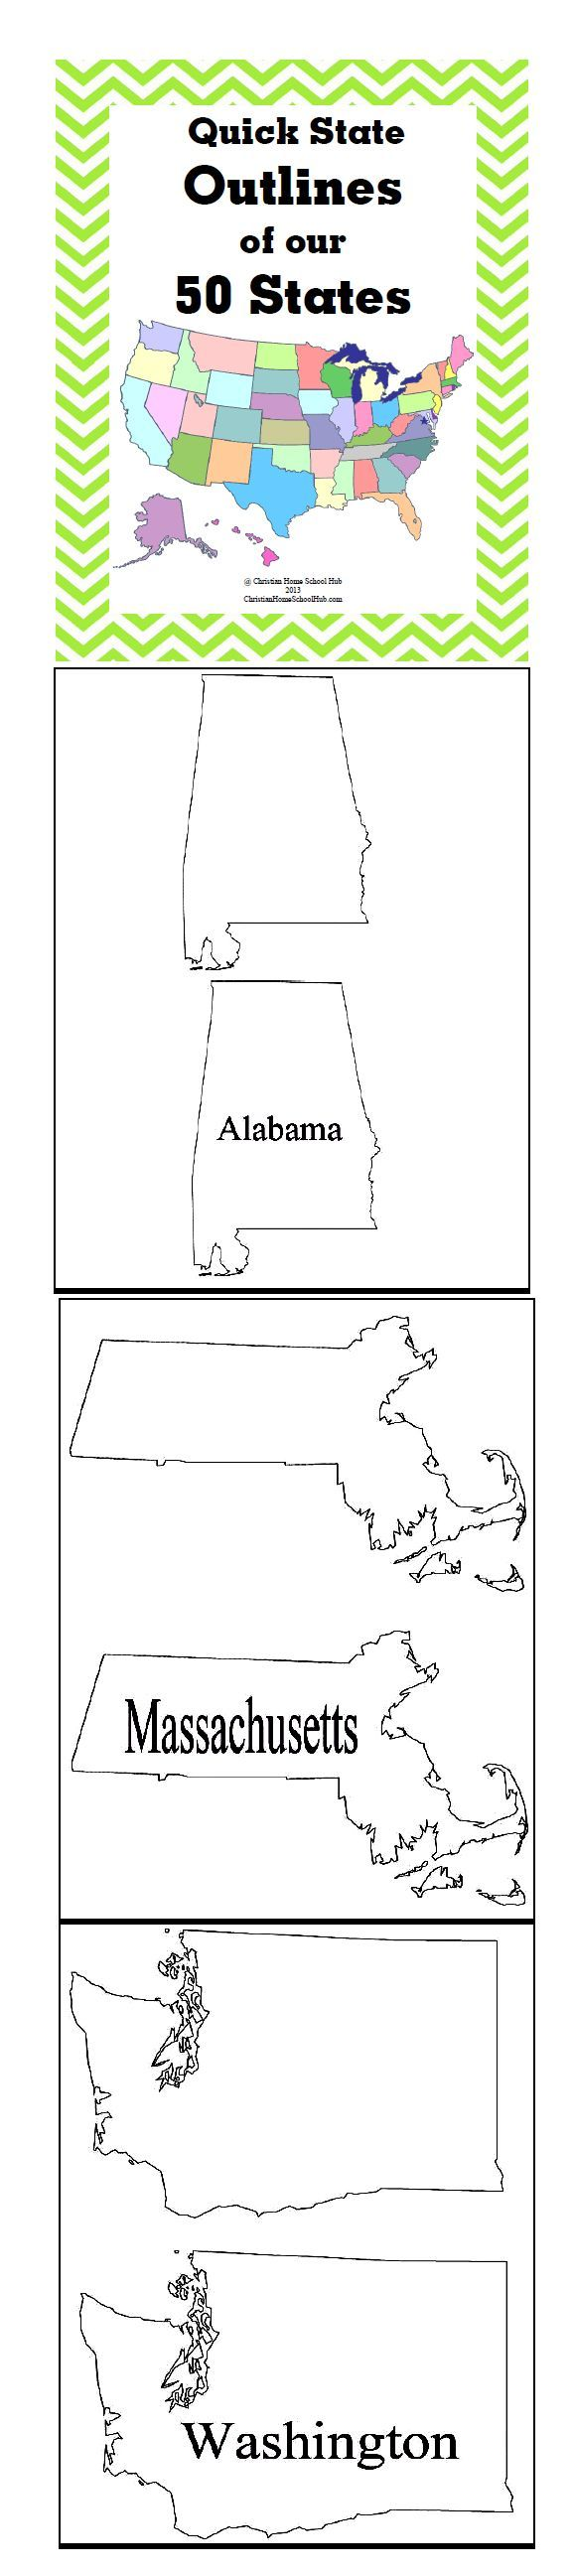 """Quick State Outlines of our 50 States! (51 pages)  Download Club members can download @ http://www.christianhomeschoolhub.spruz.com/governmenthistorygeography.htm (Under """"U.S. Government/Civics and More - US States"""")"""